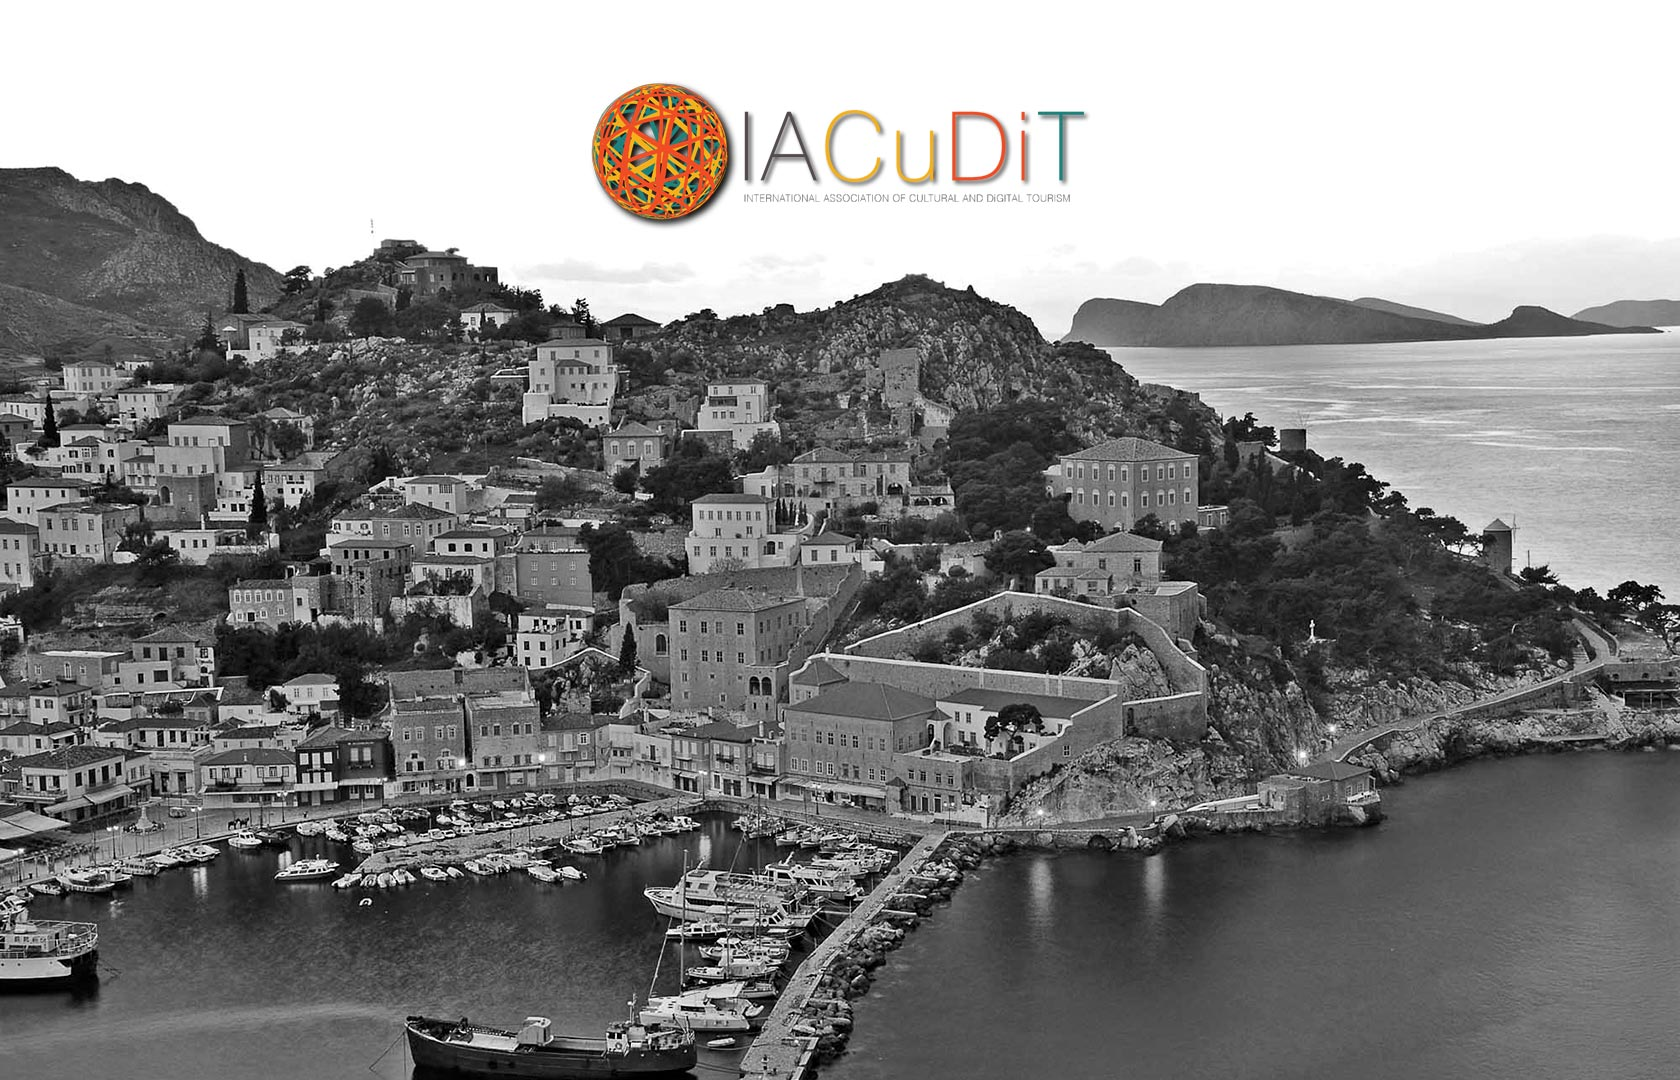 7th International Conference IACuDiT 2020